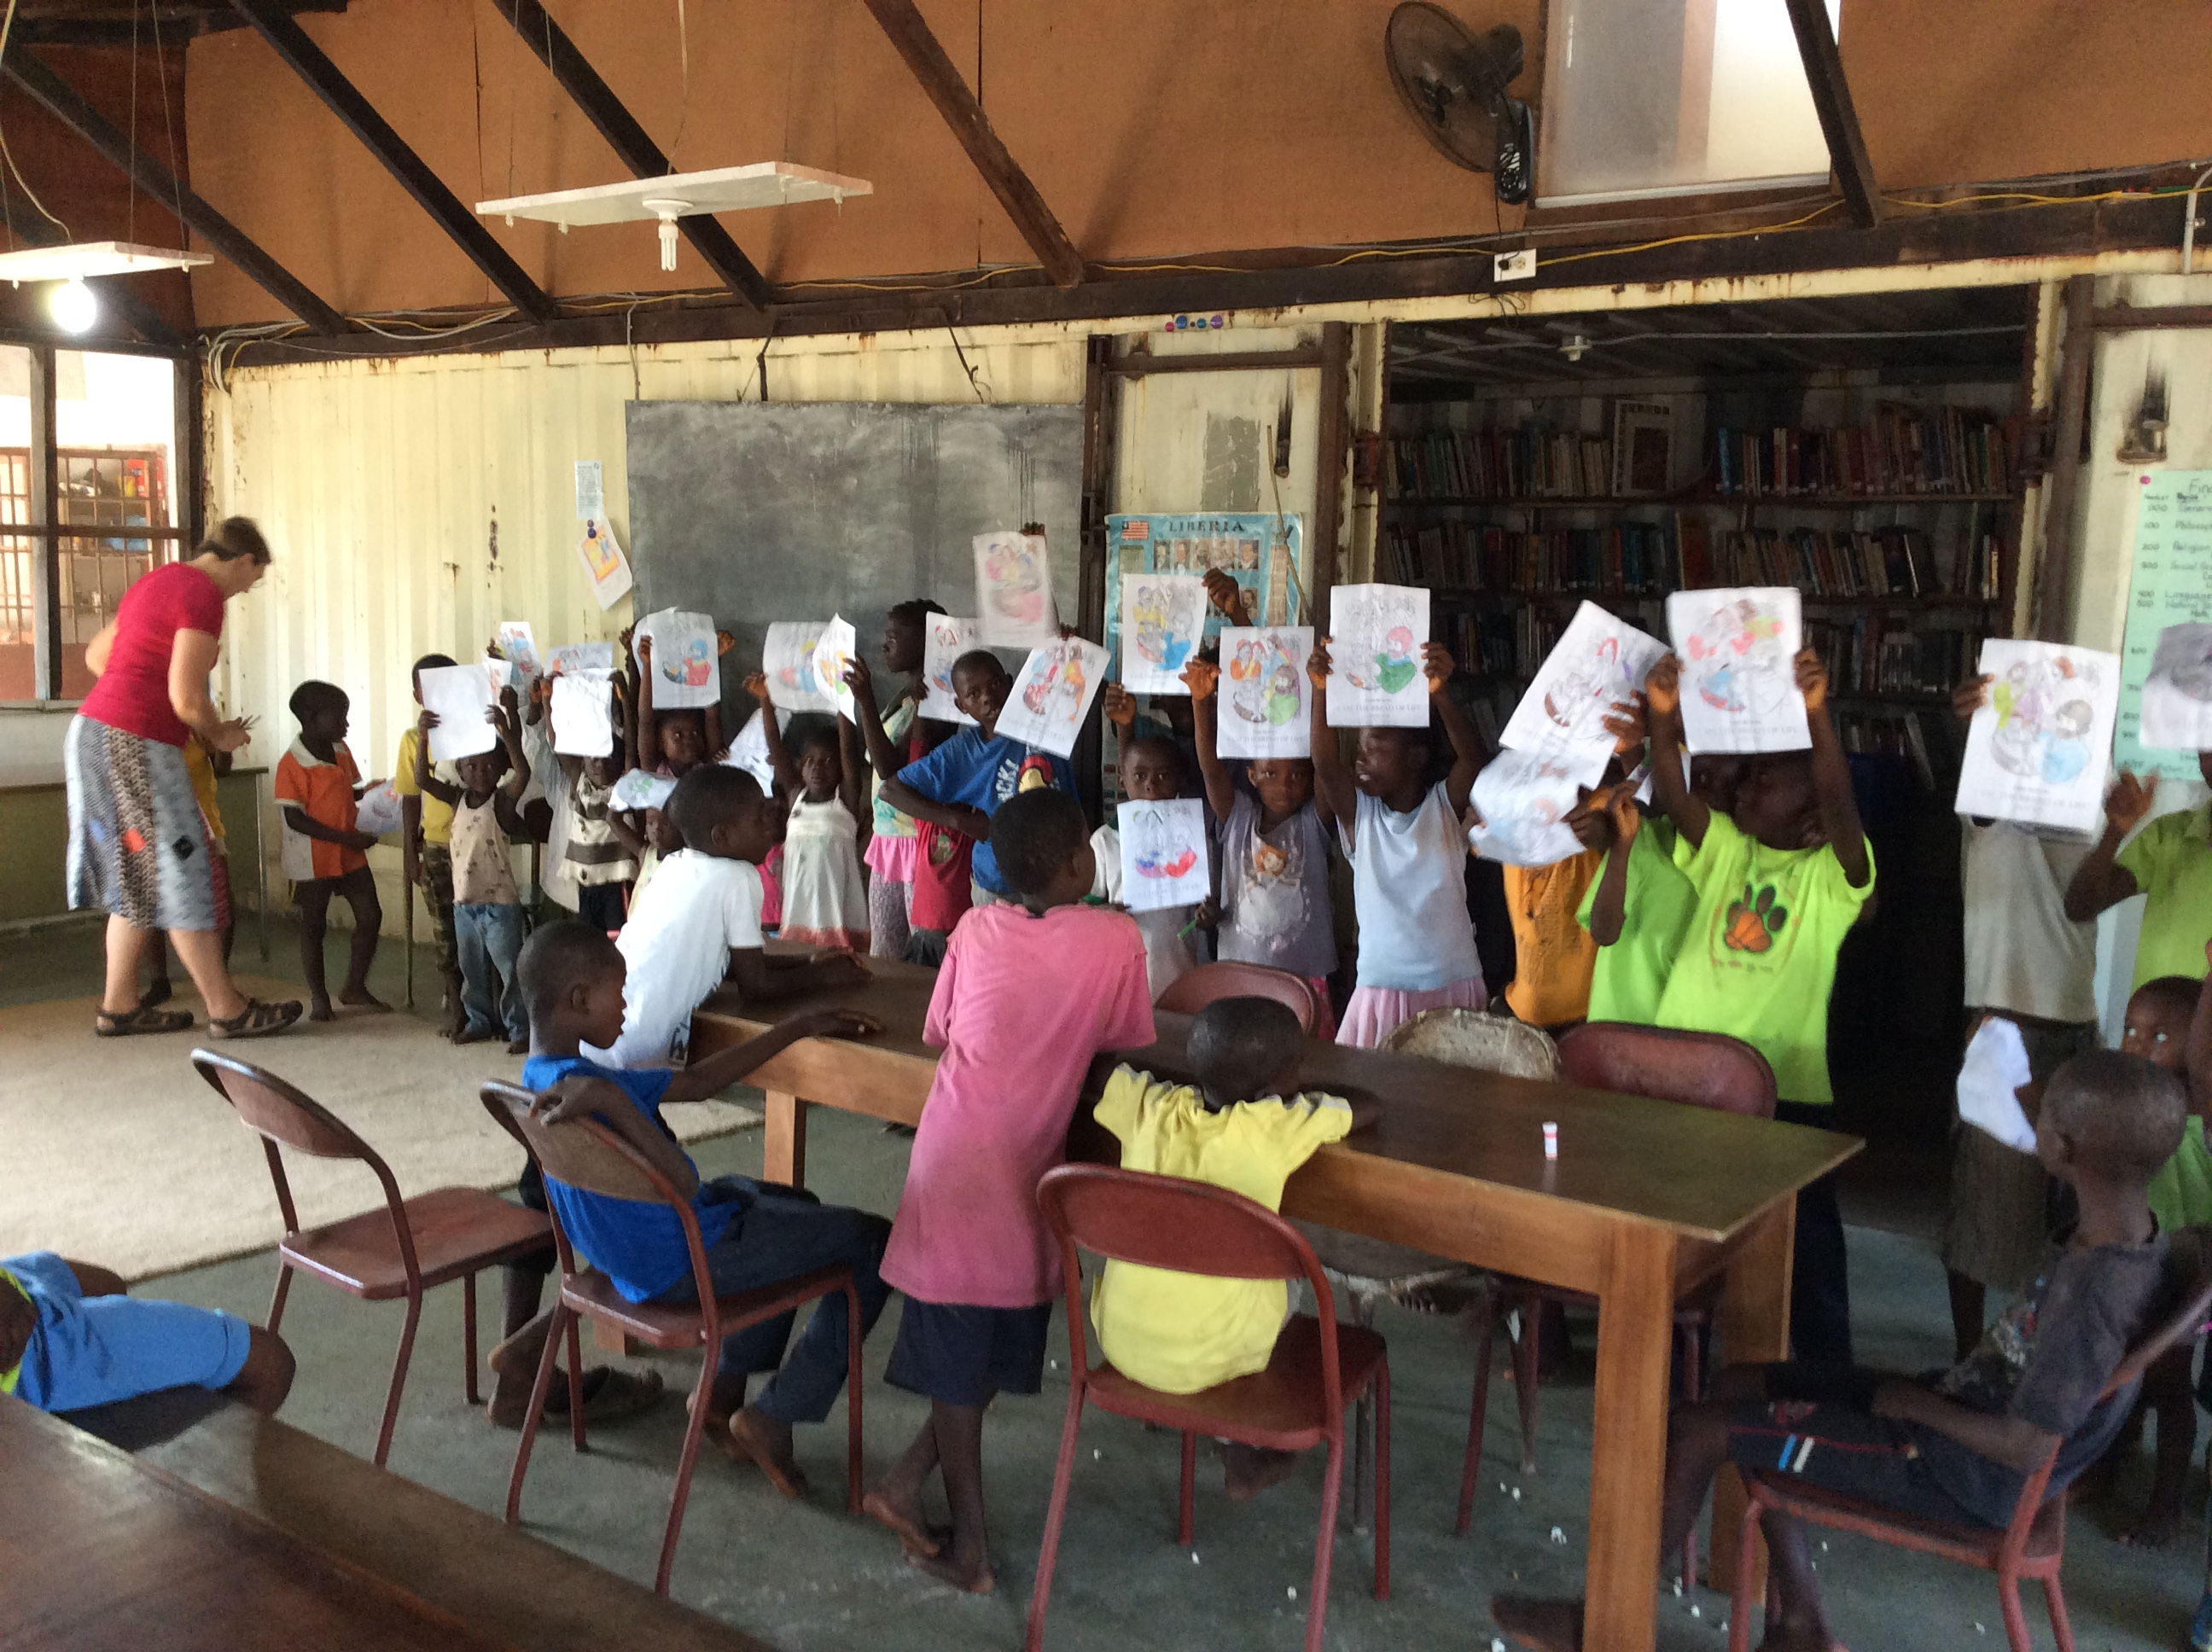 Students hold up their colouring work, (about 20) standing in a line. some are sitting and watching.